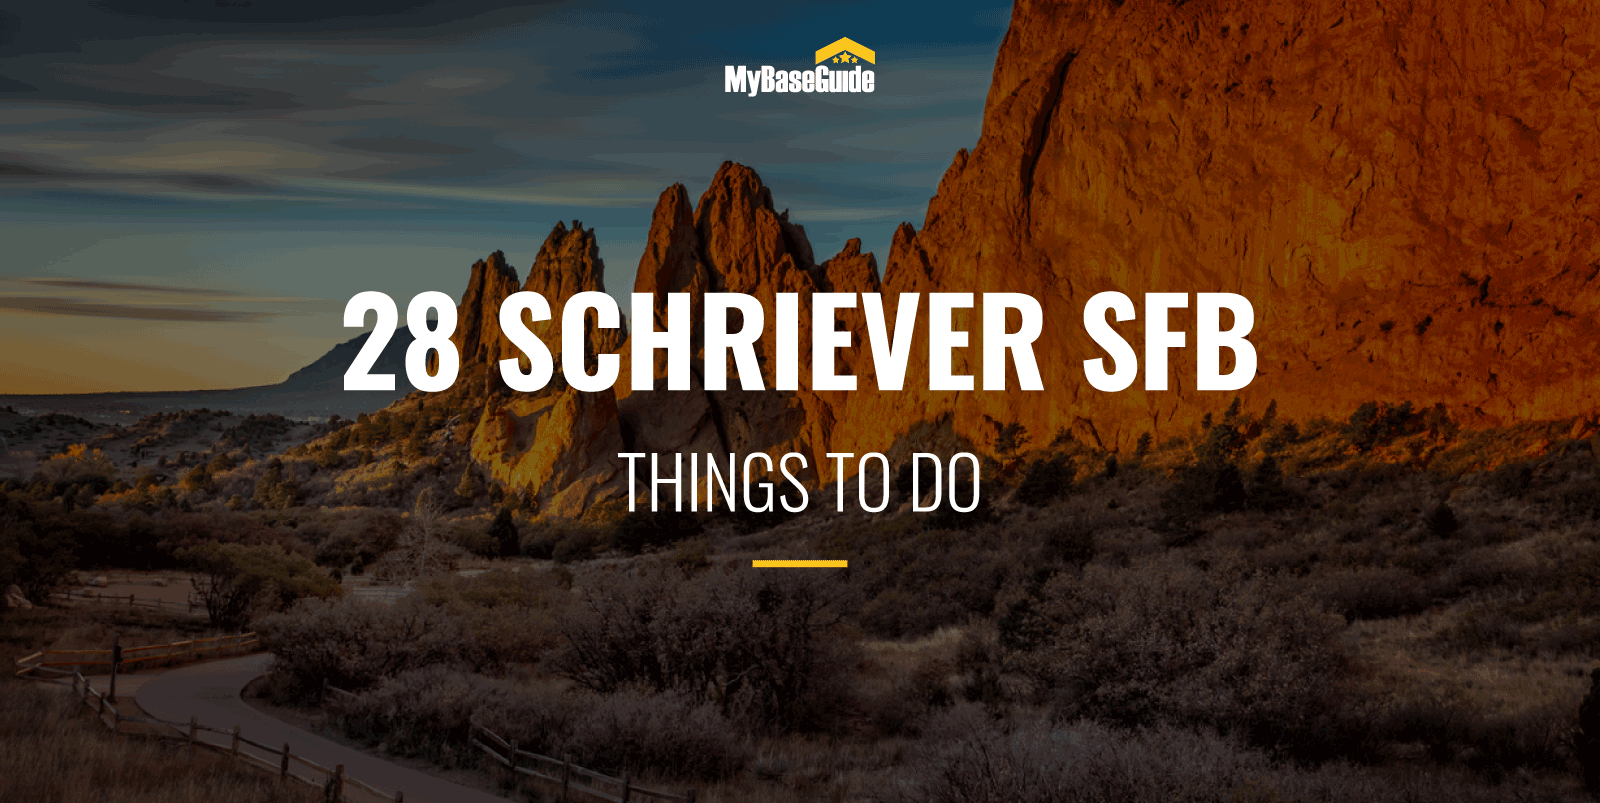 28 Schriever AFB Things to Do (Now Schriever Space Force Base)